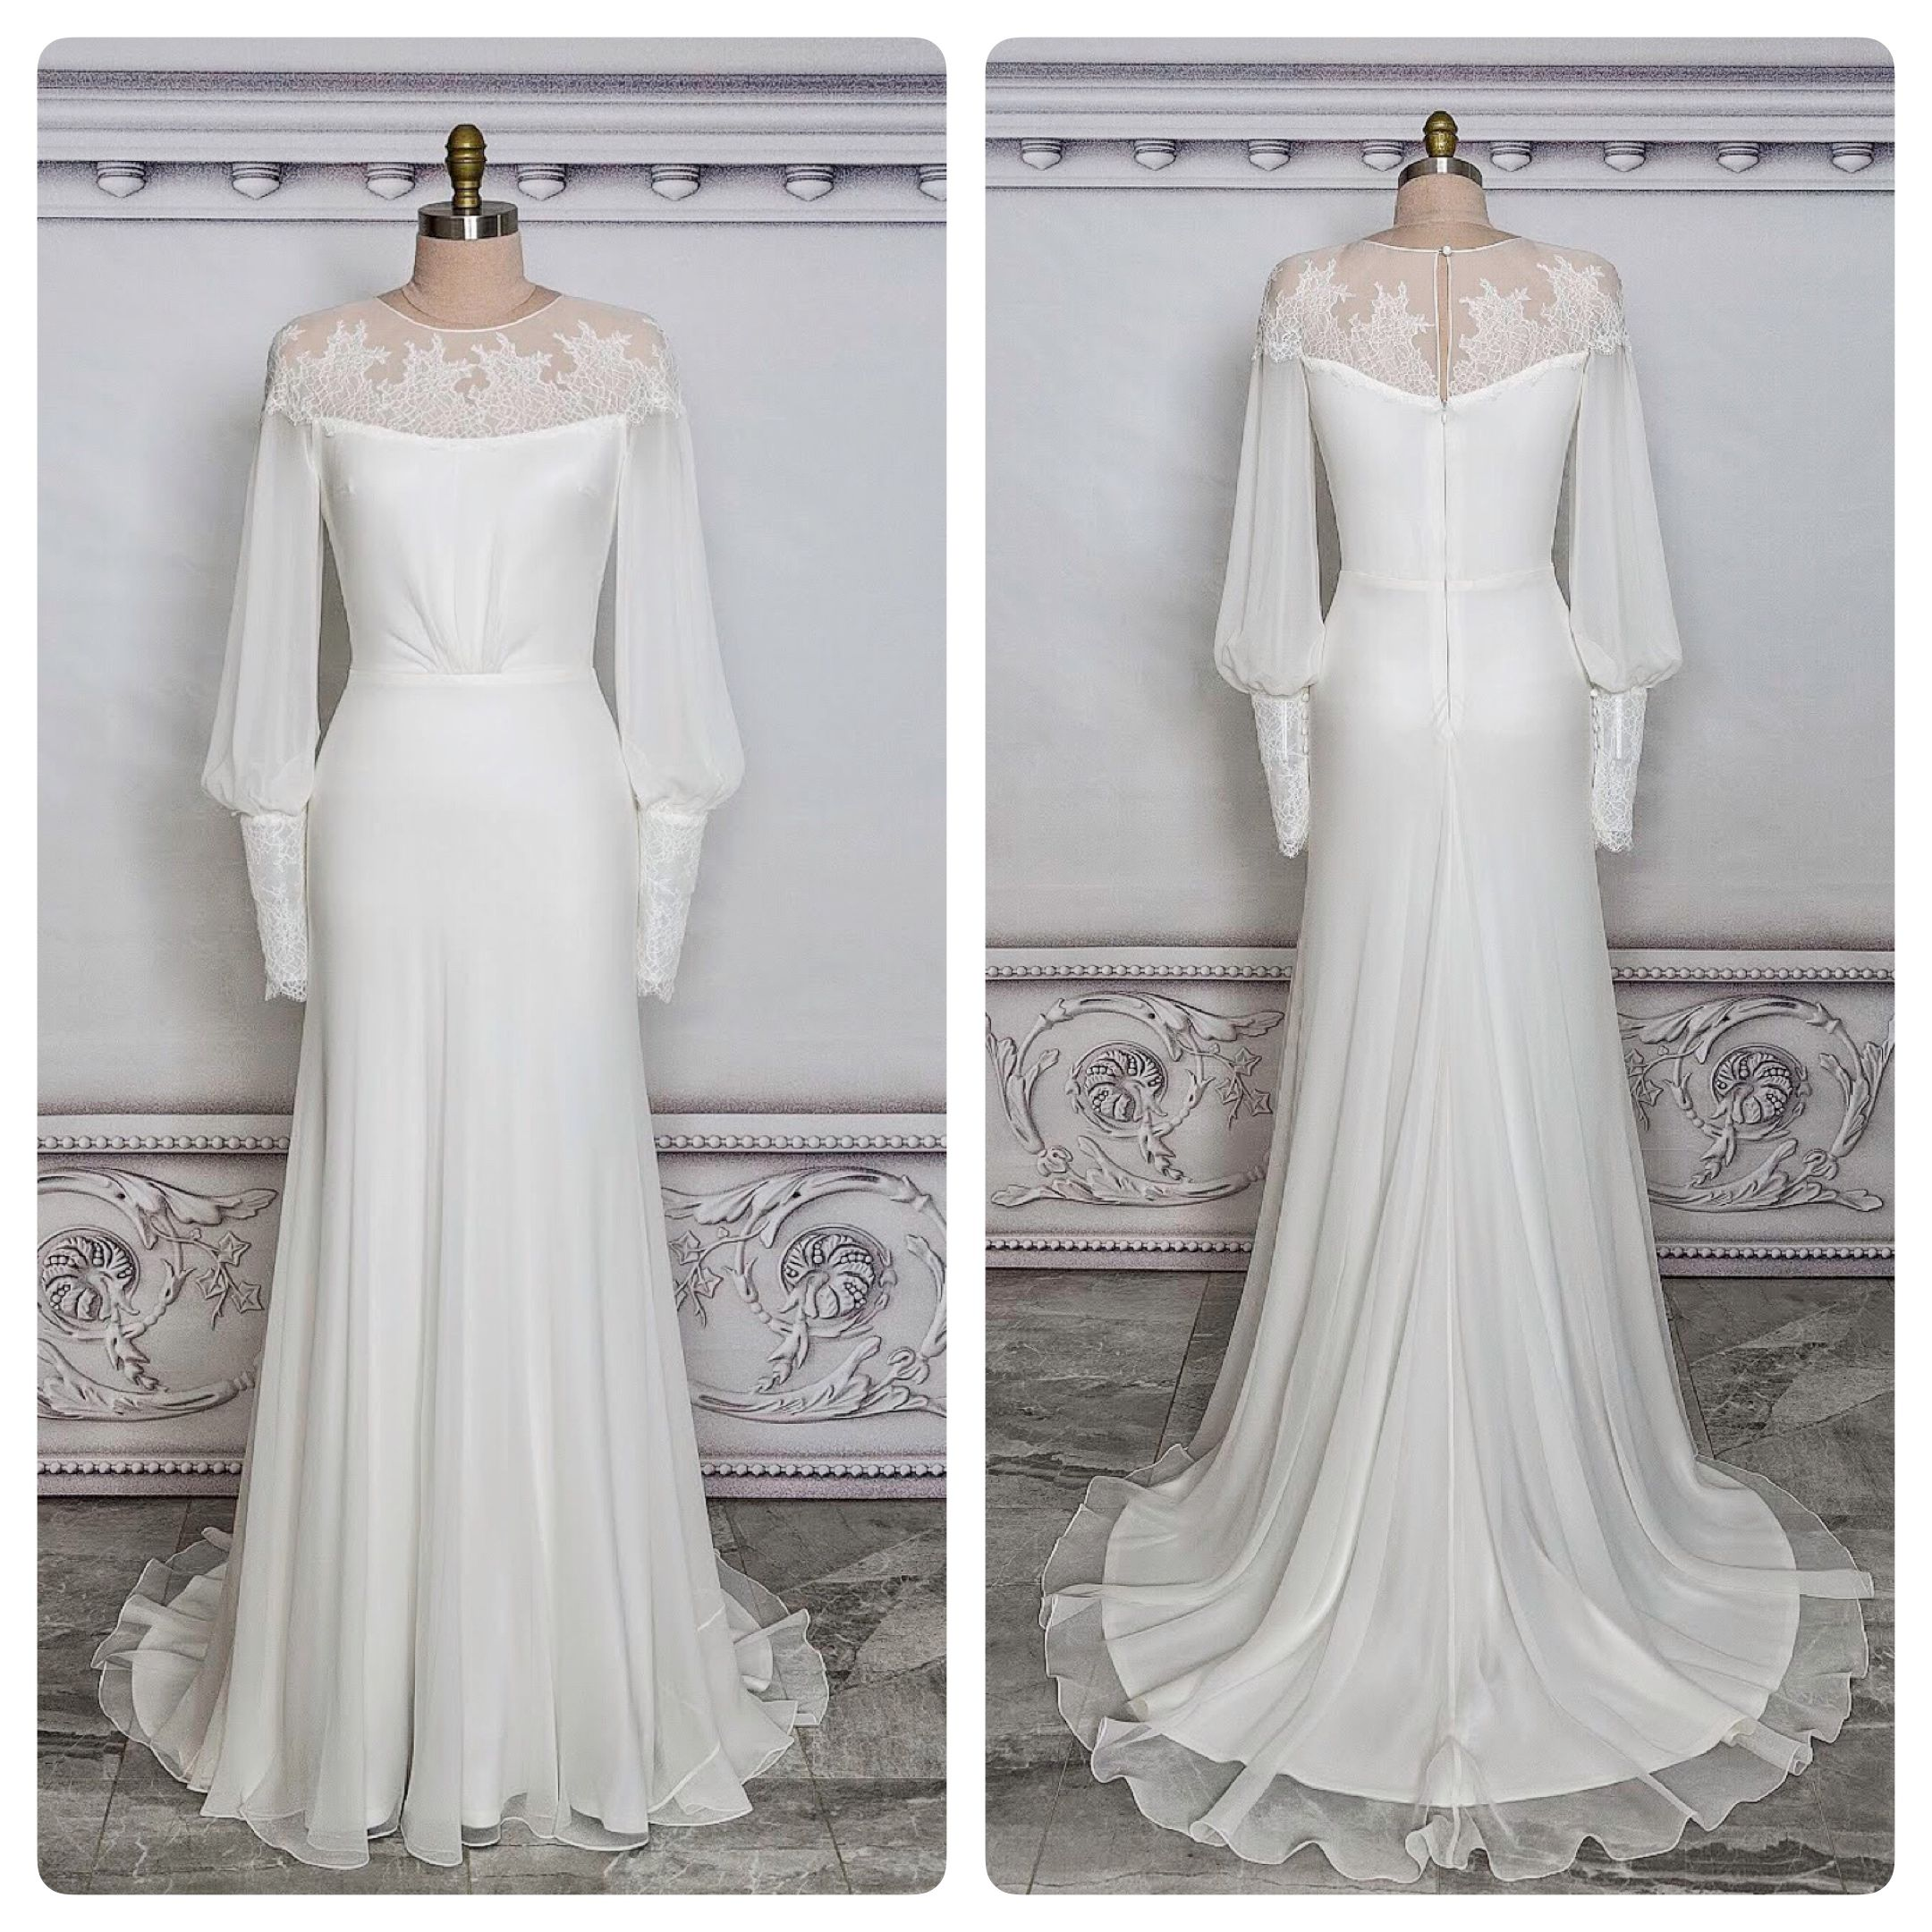 The Shire Shoulder Yoke With Delicate Chantilly Lace Applique Soft Front Bodice Vintage Wedding Dress Romantic Long Sleeve Wedding Gowns Bridal Gown Bohemian [ 2160 x 2160 Pixel ]